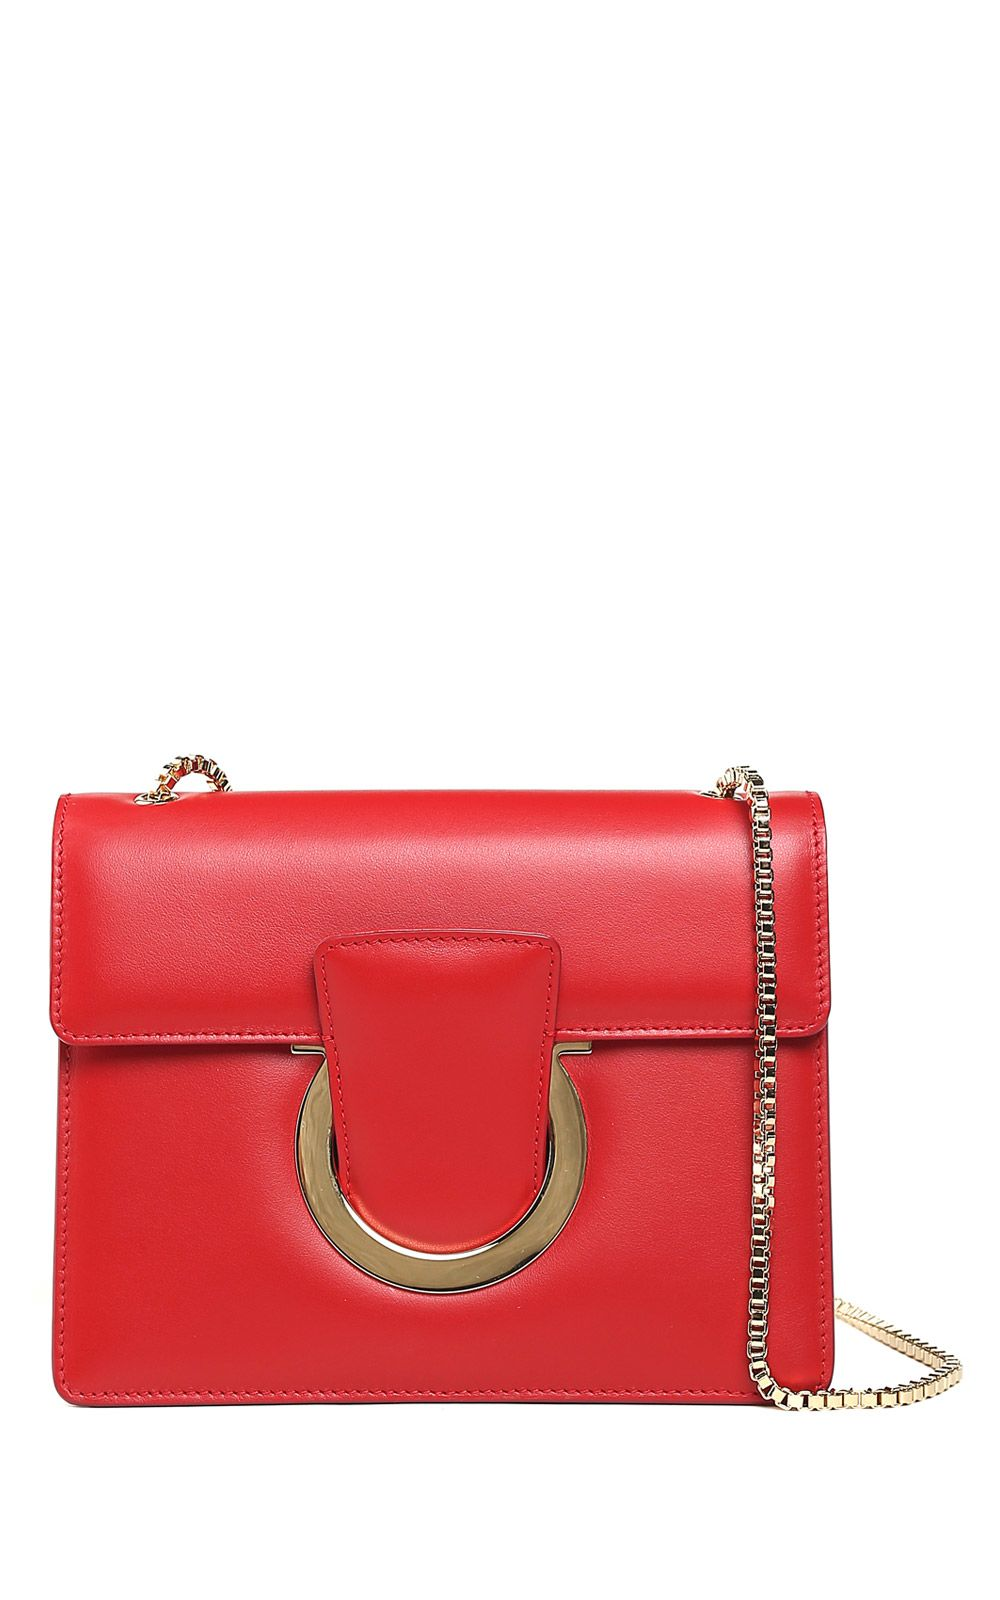 Salvatore Ferragamo Shoulder Bag for Women, Carrie, Lipstick Red, Leather, 2017, one size